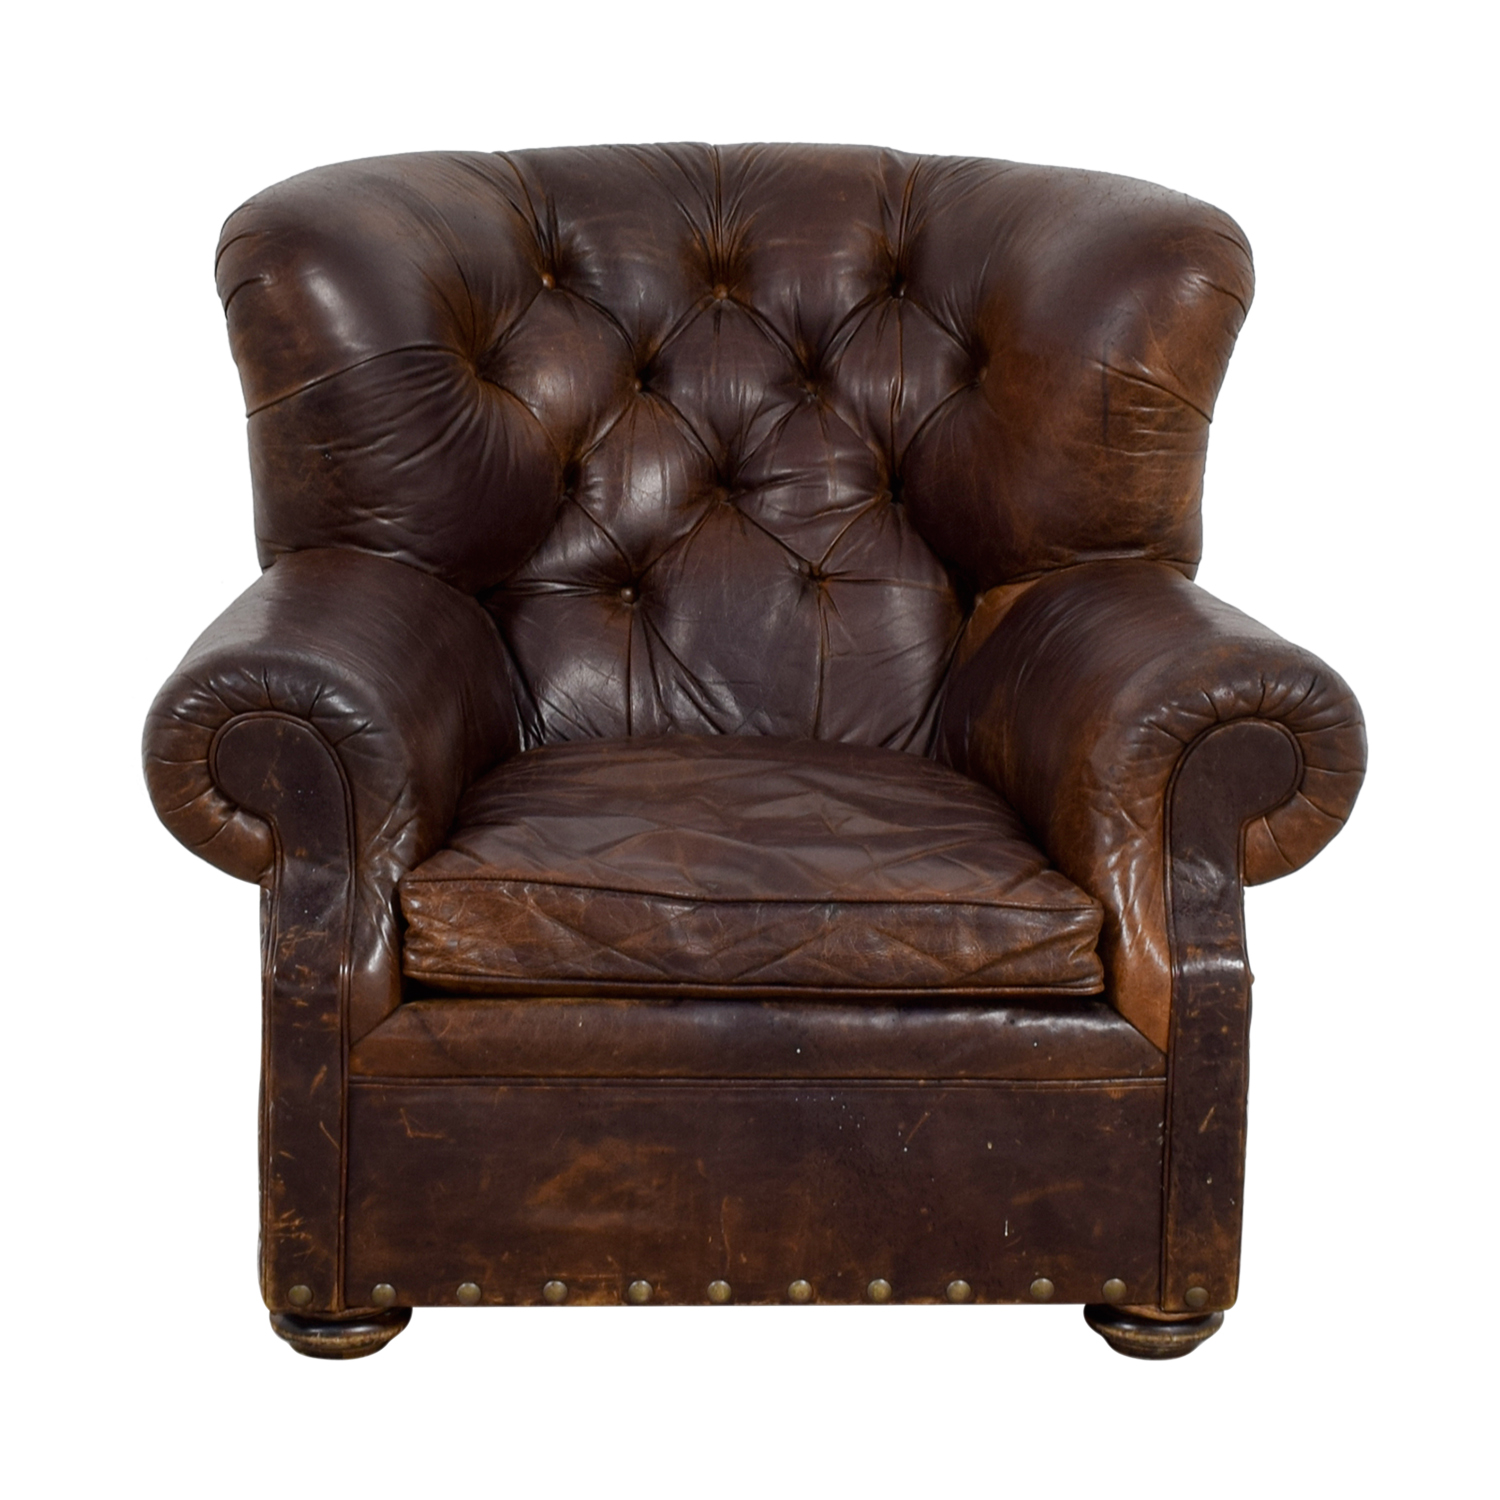 74% OFF   Restoration Hardware Restoration Hardware Brown Leather Accent  Chair / Chairs